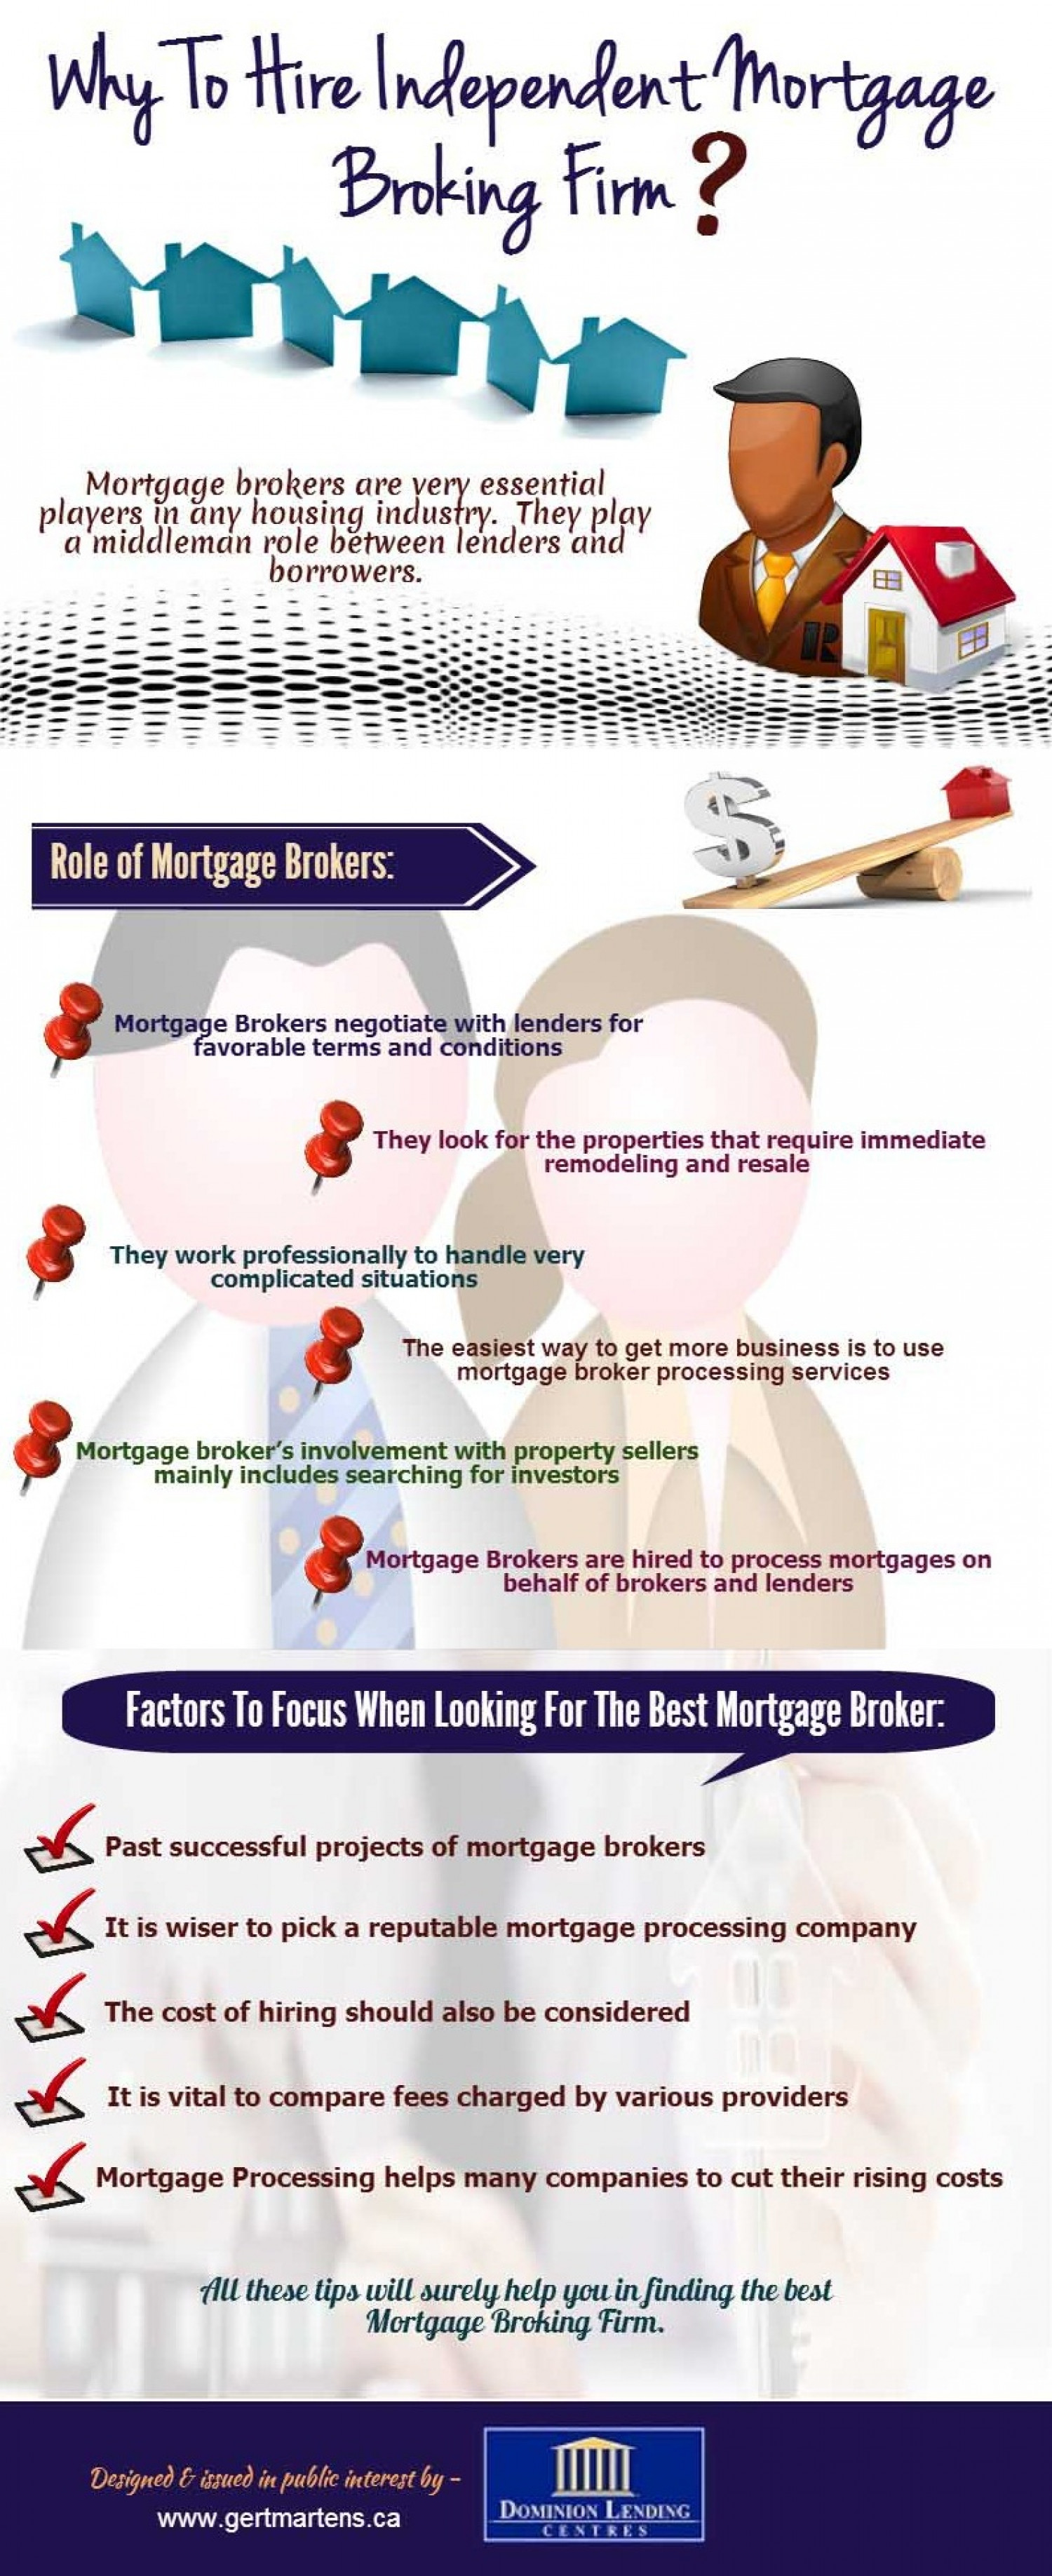 Why to Hire Independent Mortgage Broking Firm Infographic